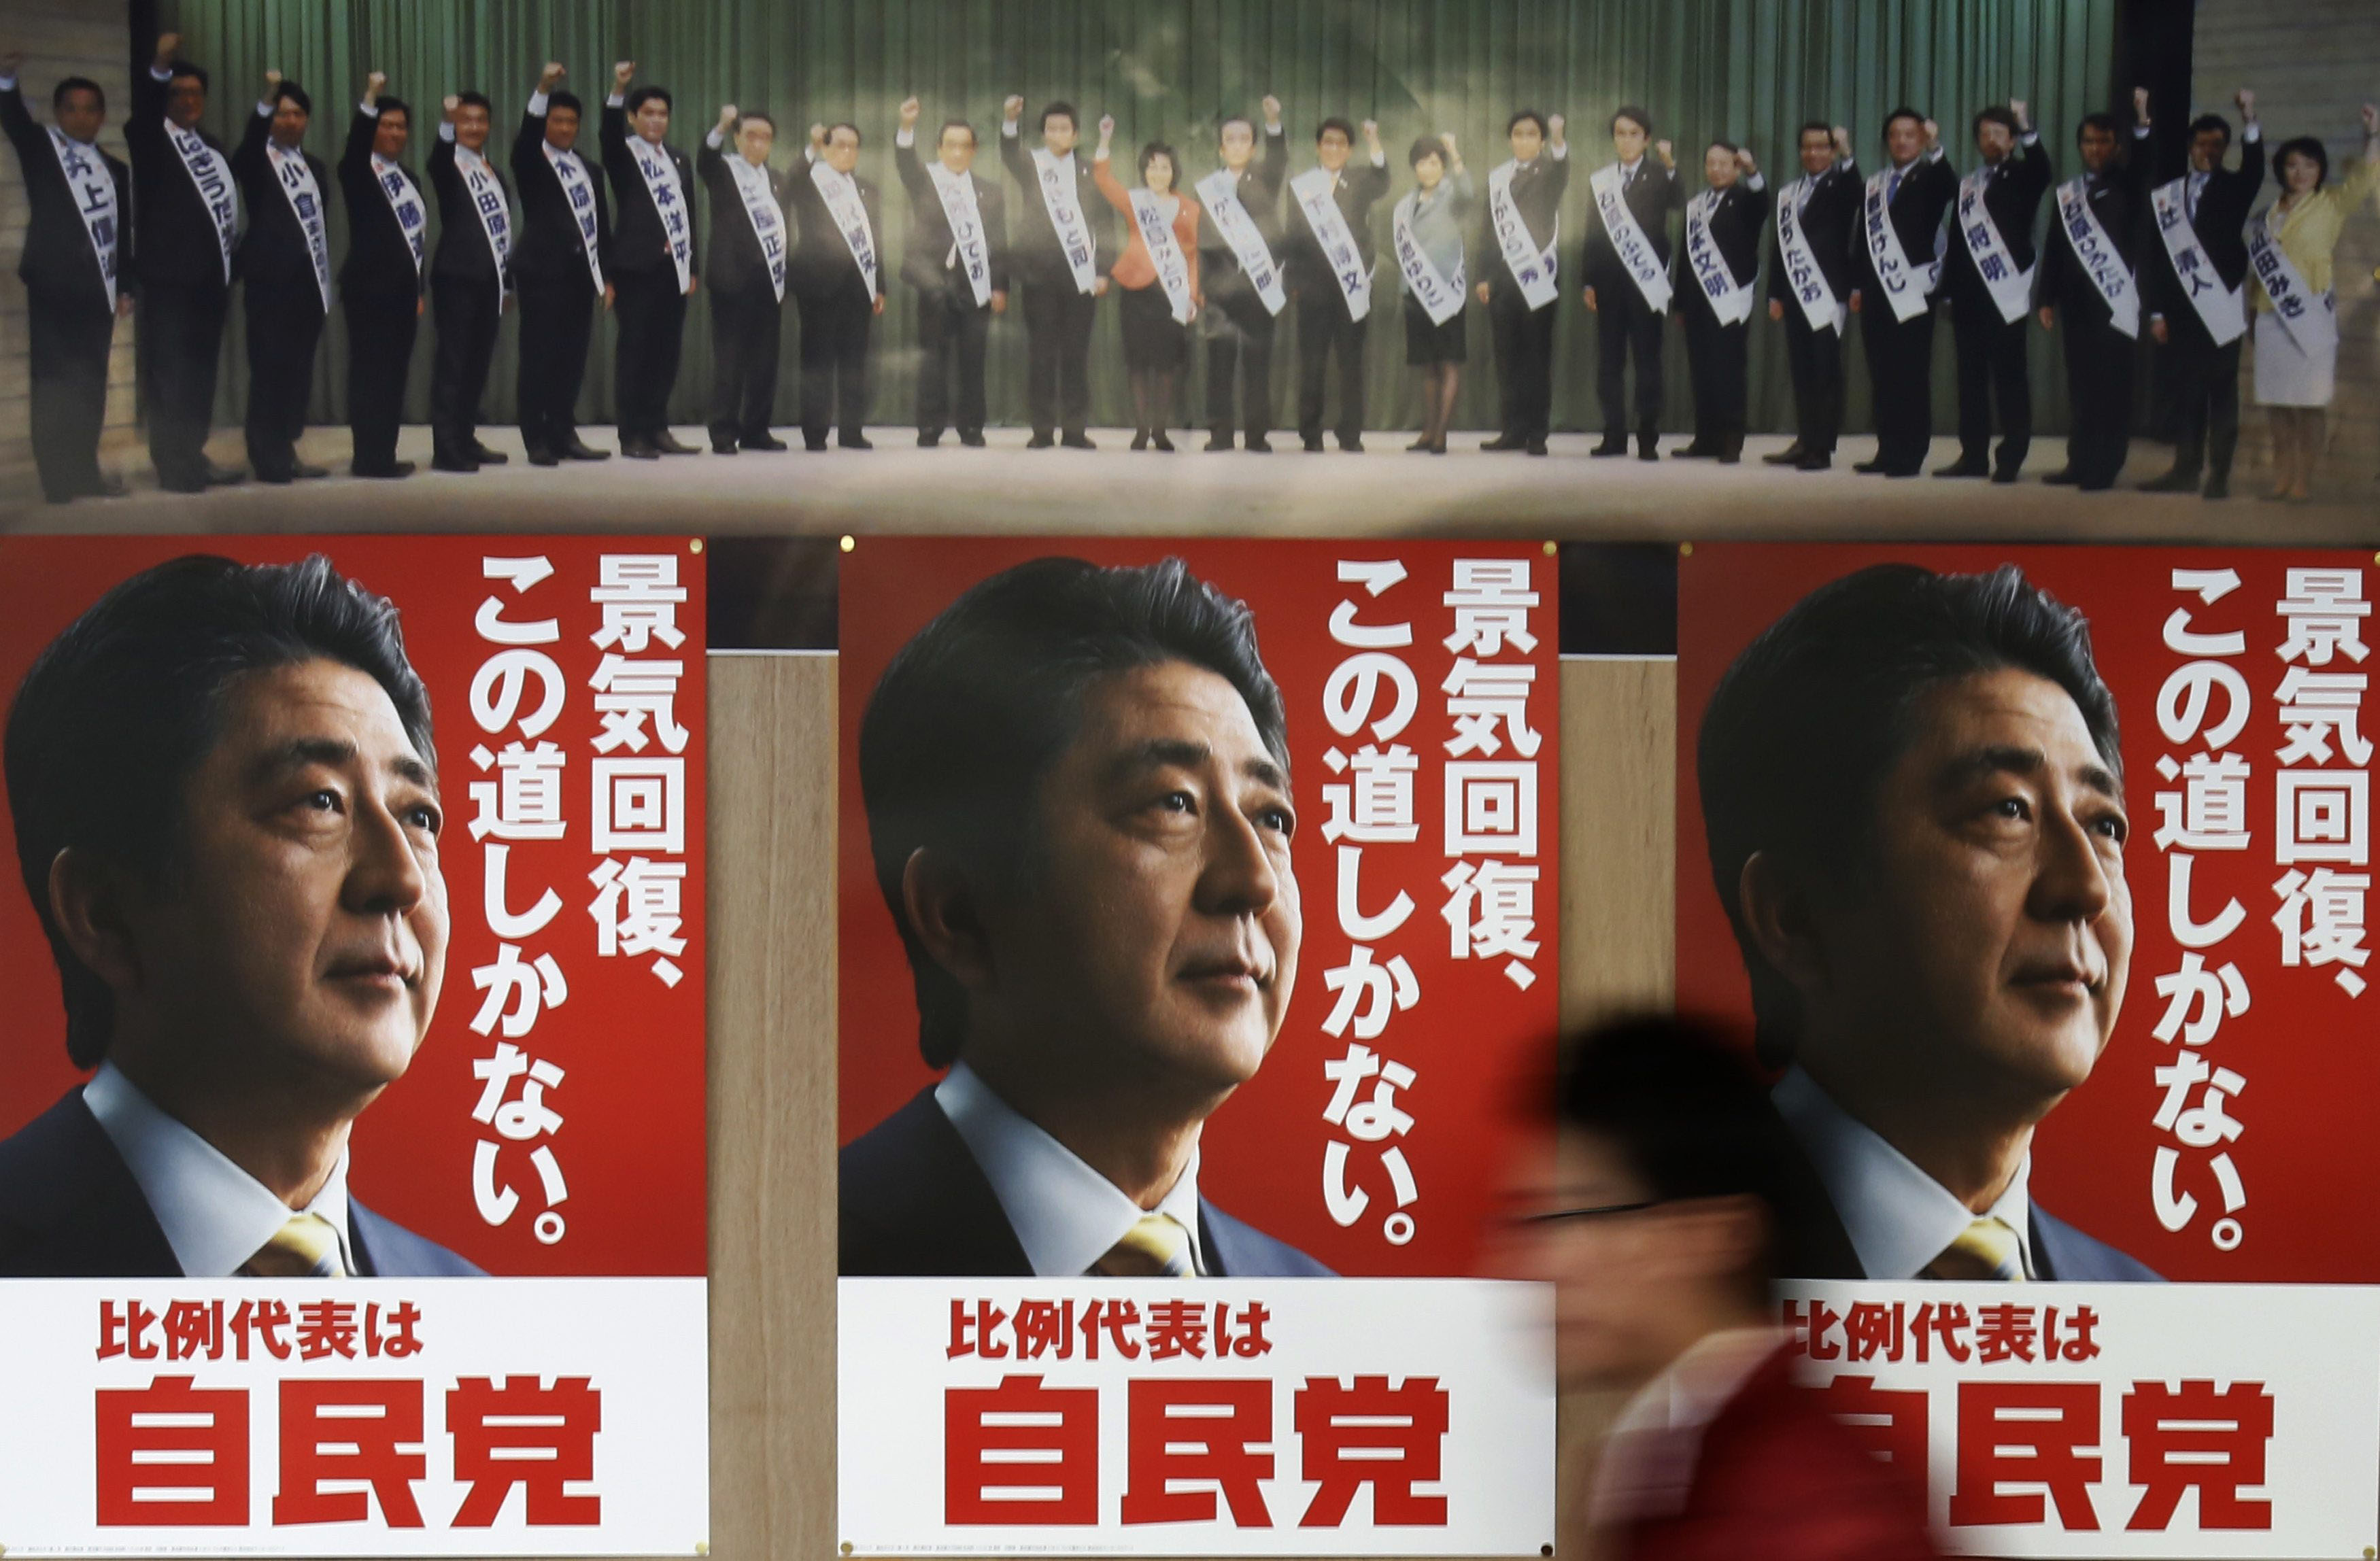 Japan's ruling Liberal Democratic Party election manifesto as Shinzo Abe seeks fourth term